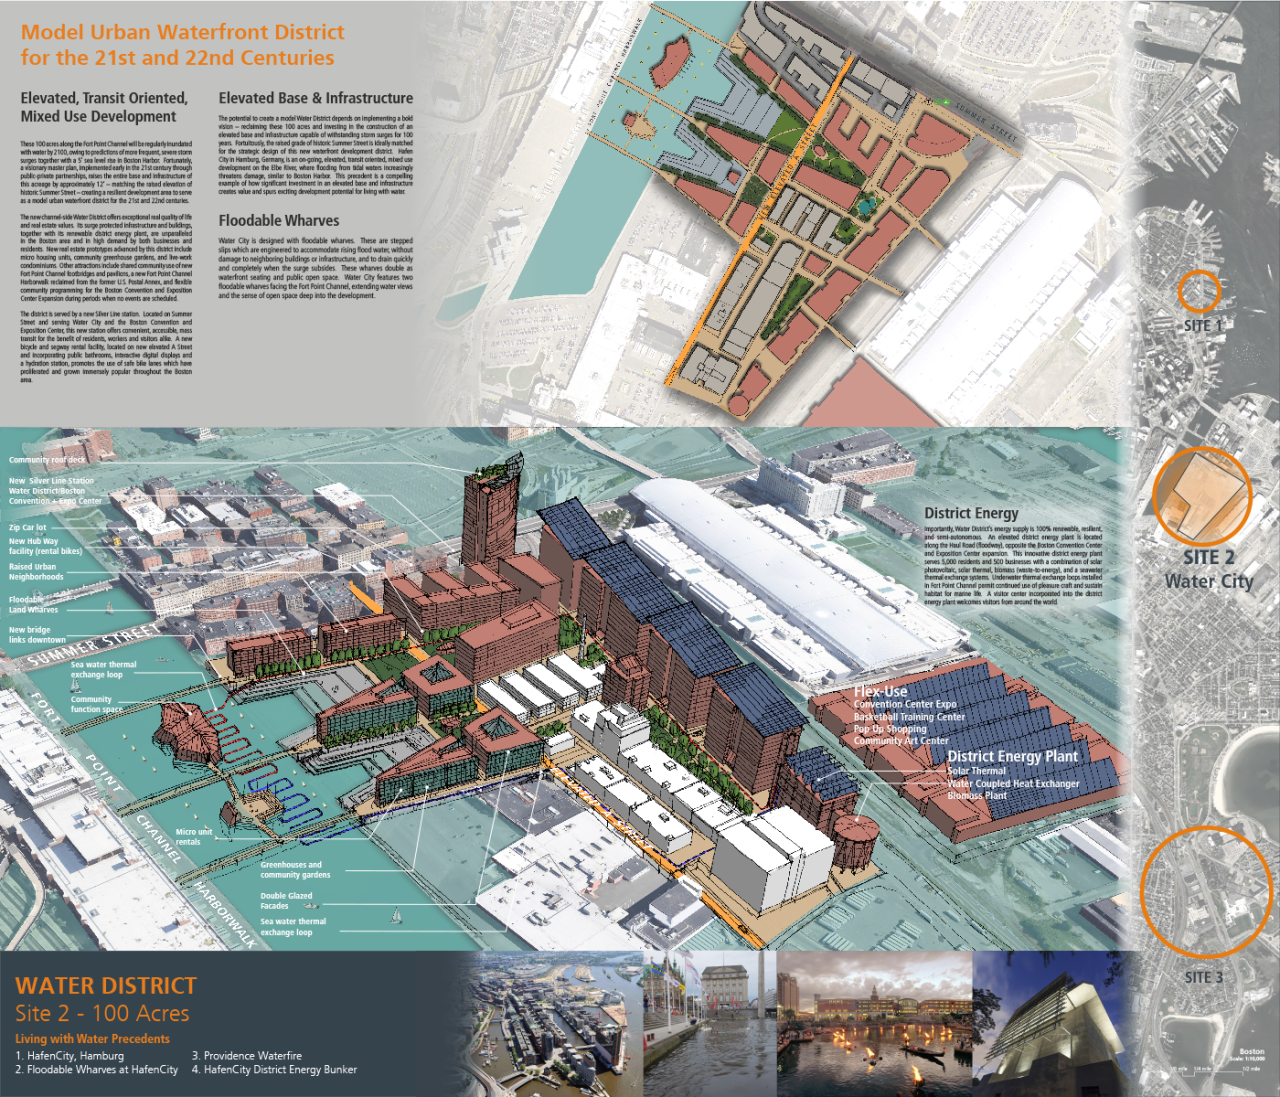 """""""Model Urban Waterfront District"""" led by Architerra Inc.– This proposal would raise the entire base and infrastructure of the 100-acre neighborhood by approximately twelve feet, matching the  raised elevation of historic Summer Street and creating a resilient development area to serve as a model urban waterfront district for the 21st and 22nd centuries."""